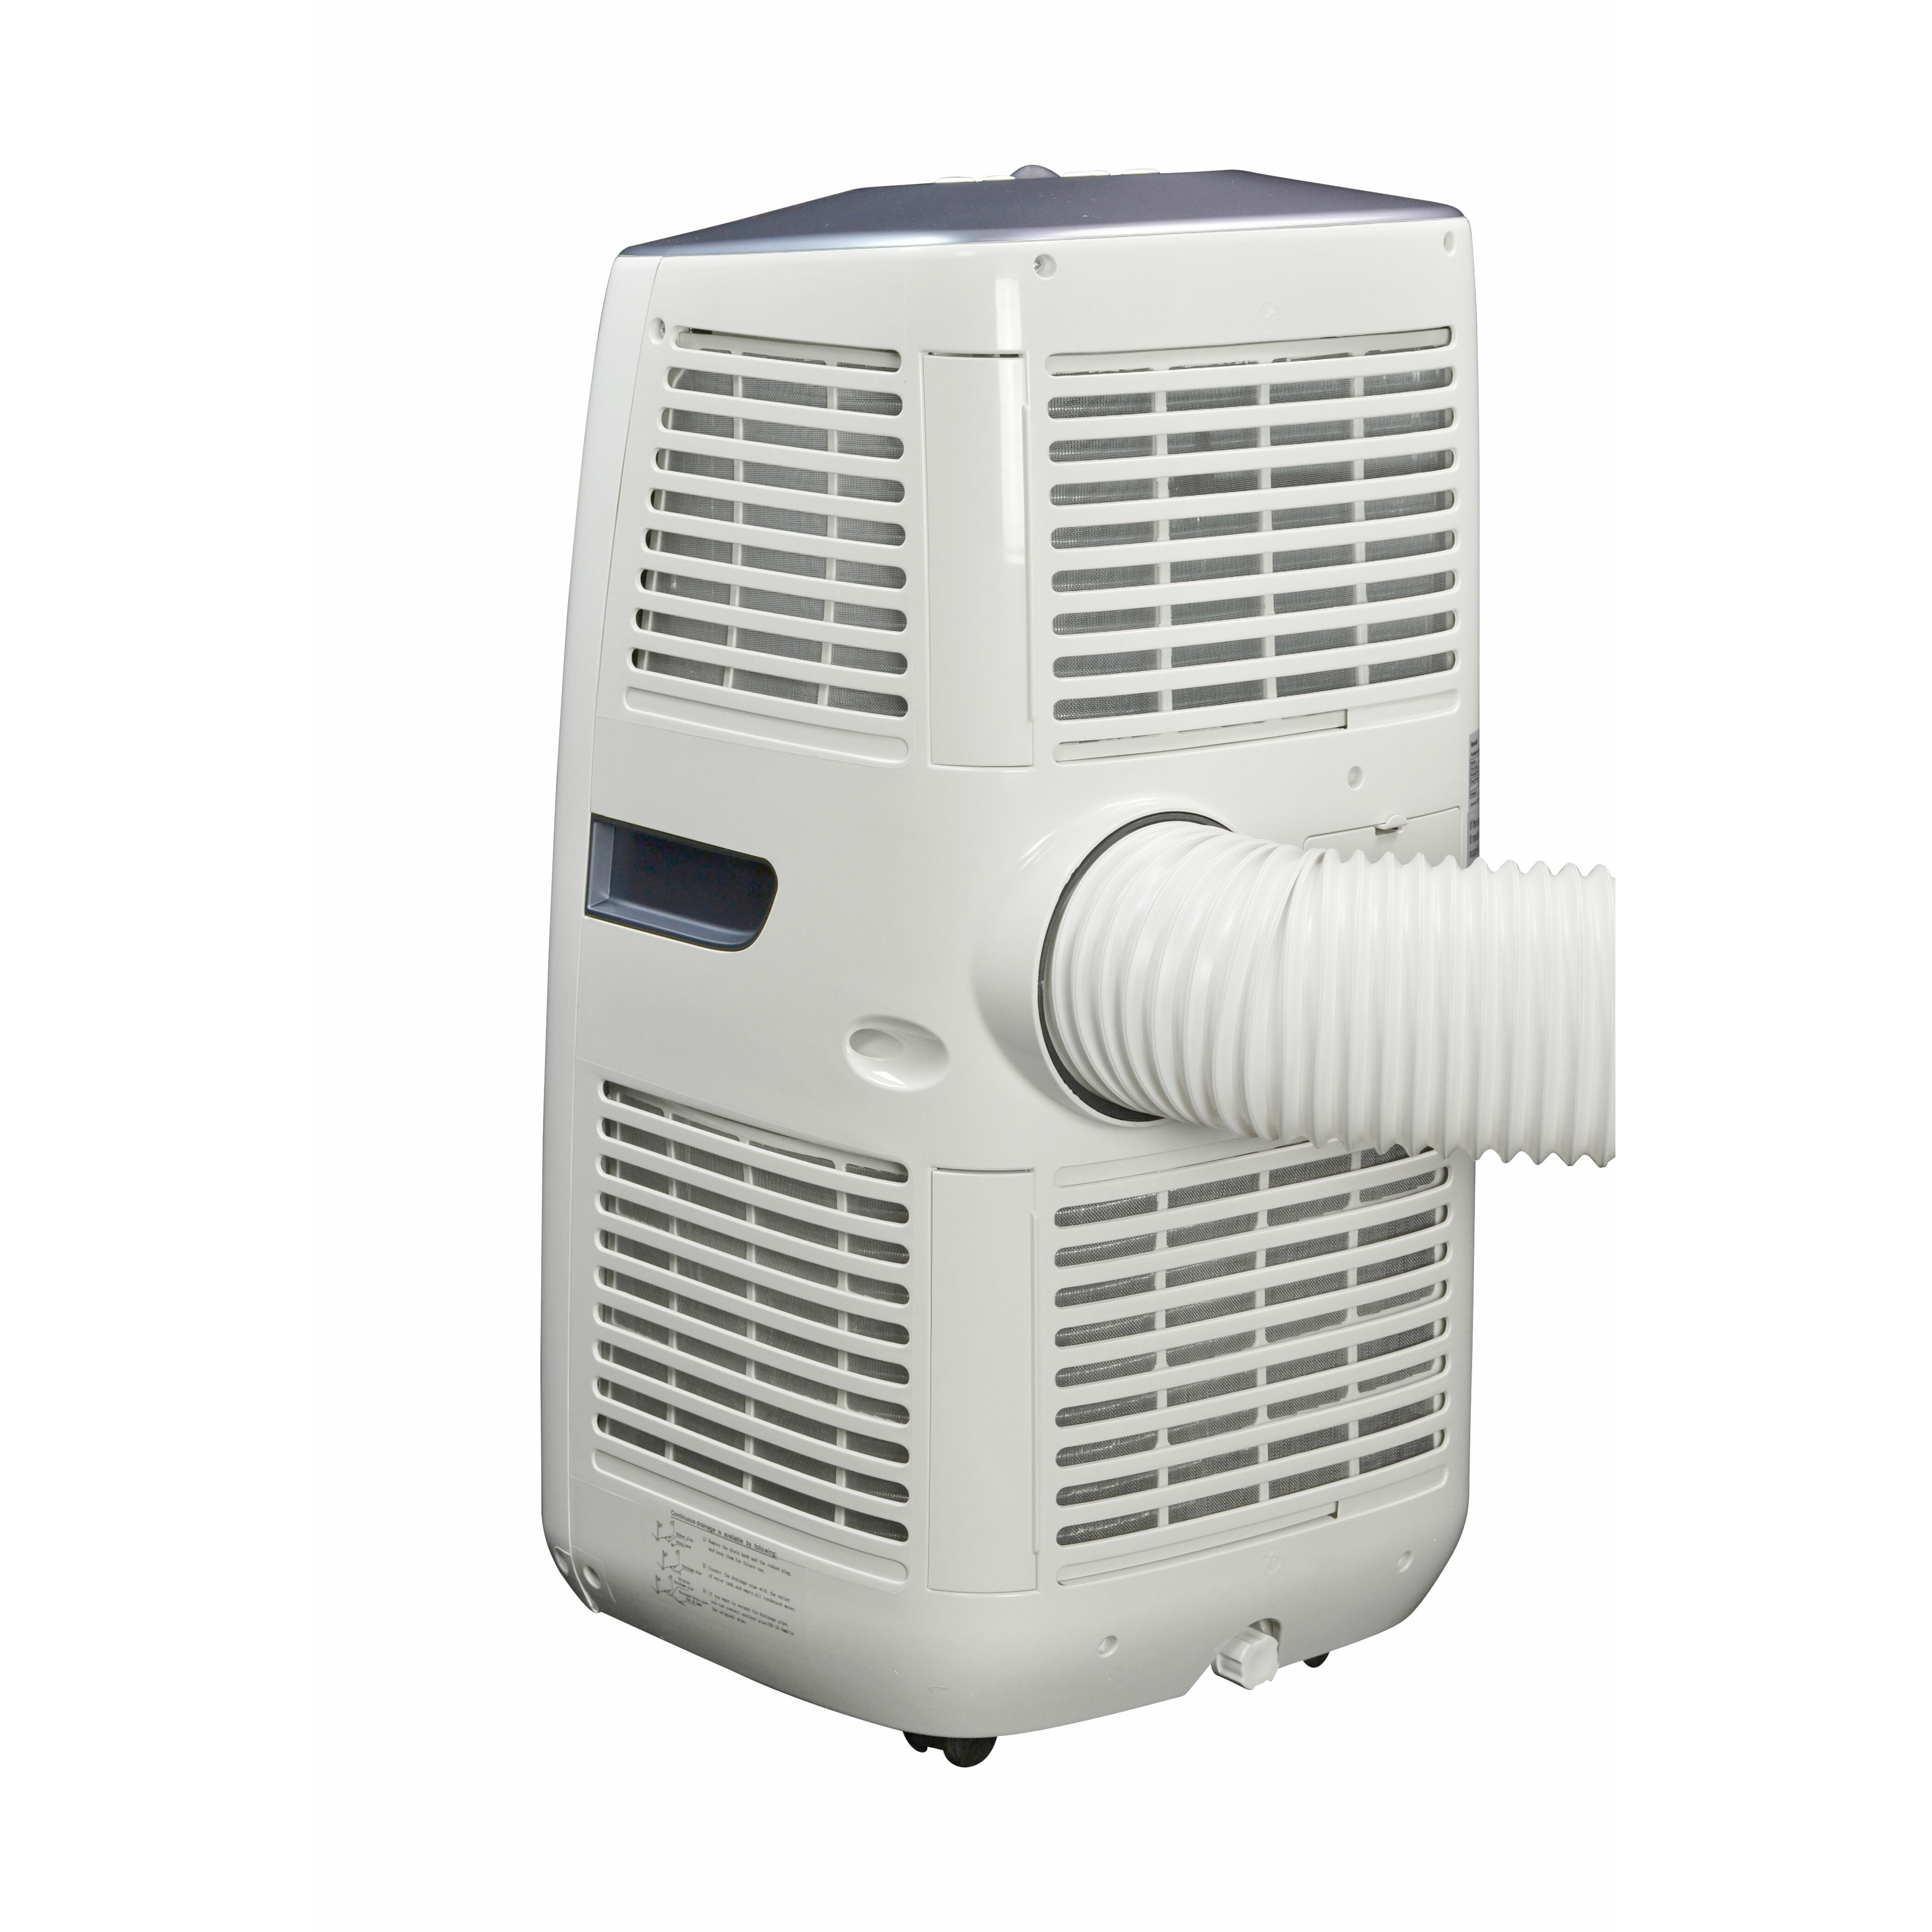 #595E72 NewAir 14 000 BTU Portable Air Conditioner With Remote  Most Recent 13730 Ratings On Portable Air Conditioners image with 4176x4176 px on helpvideos.info - Air Conditioners, Air Coolers and more